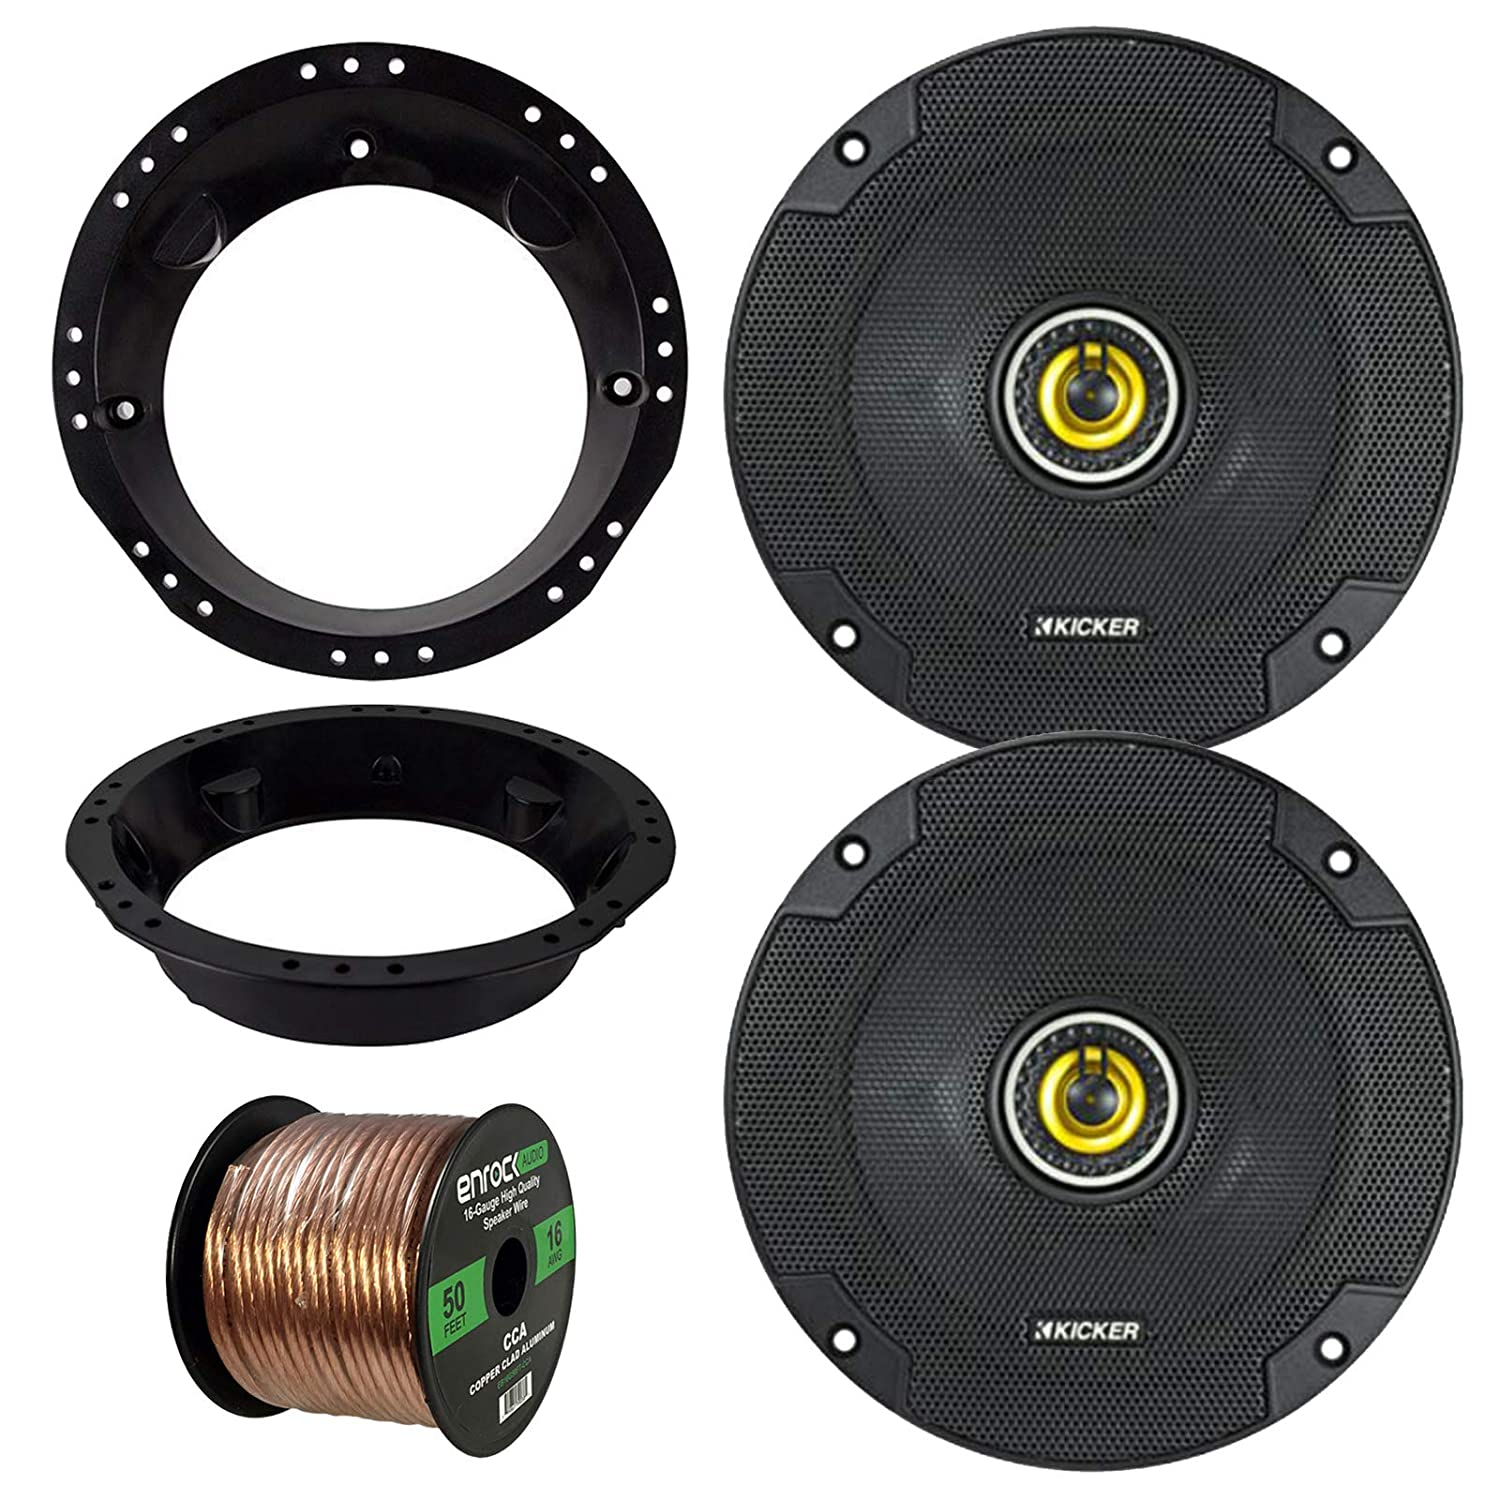 Enrock 50 Foot 16 Guage Speaker Wire 2X Kicker 40CS654 6.5 Inch 300 Watts 2-Way Black Car Stereo Coaxial Speakers Combo With Speaker Mounting Rings For Motorcycles 98-13 Harley Speaker Bundle